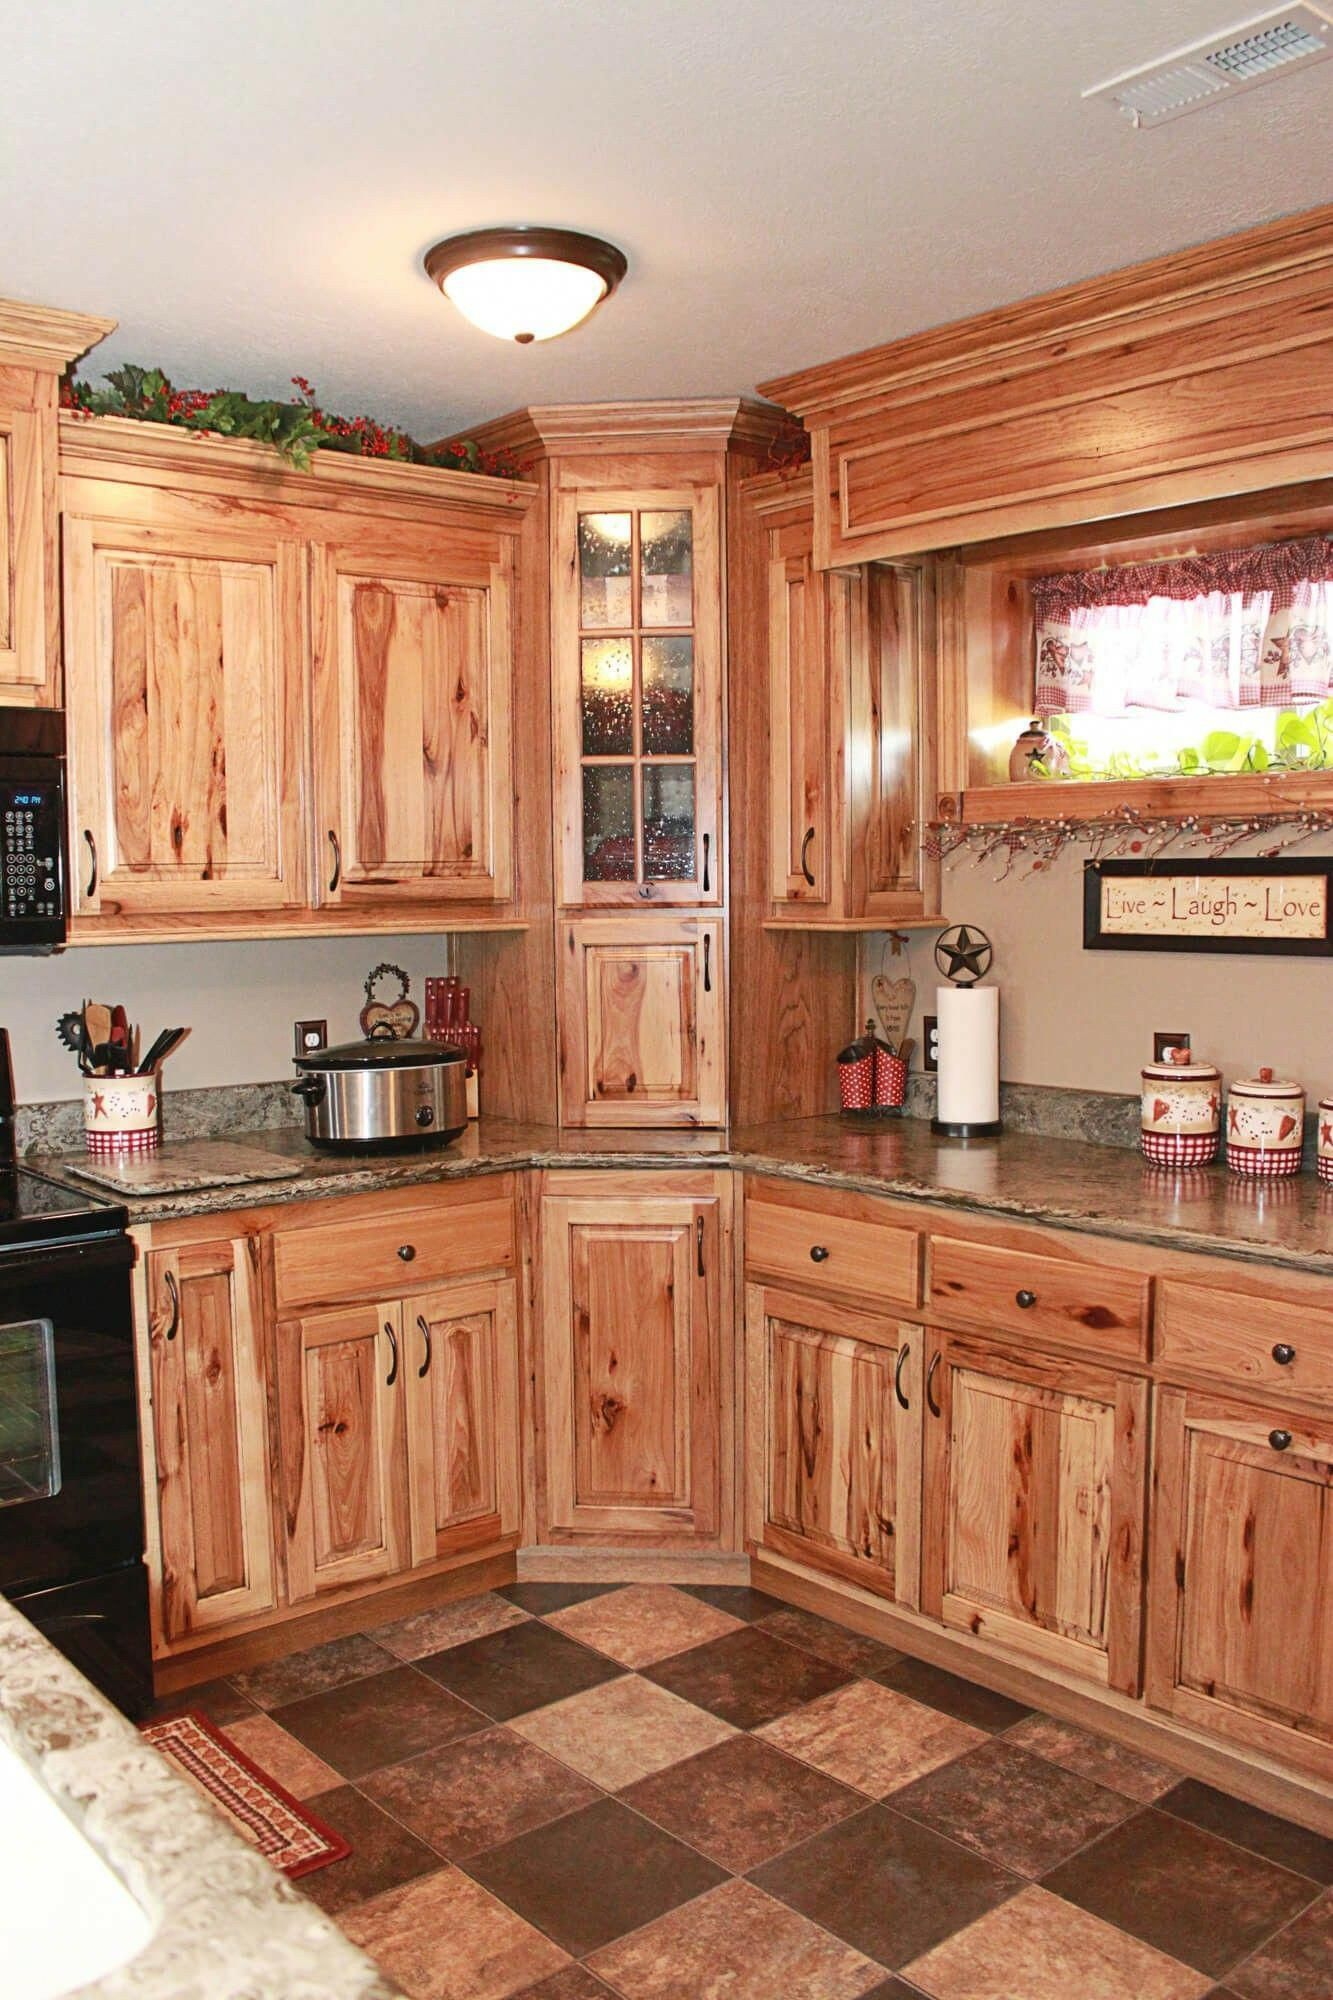 New Kitchen Cabinets Will Give A Fresh Look To Your Kitchen Discover The Collection Of Hickory Kitchen Cabinets Kitchen Cabinet Styles Kitchen Cabinet Remodel